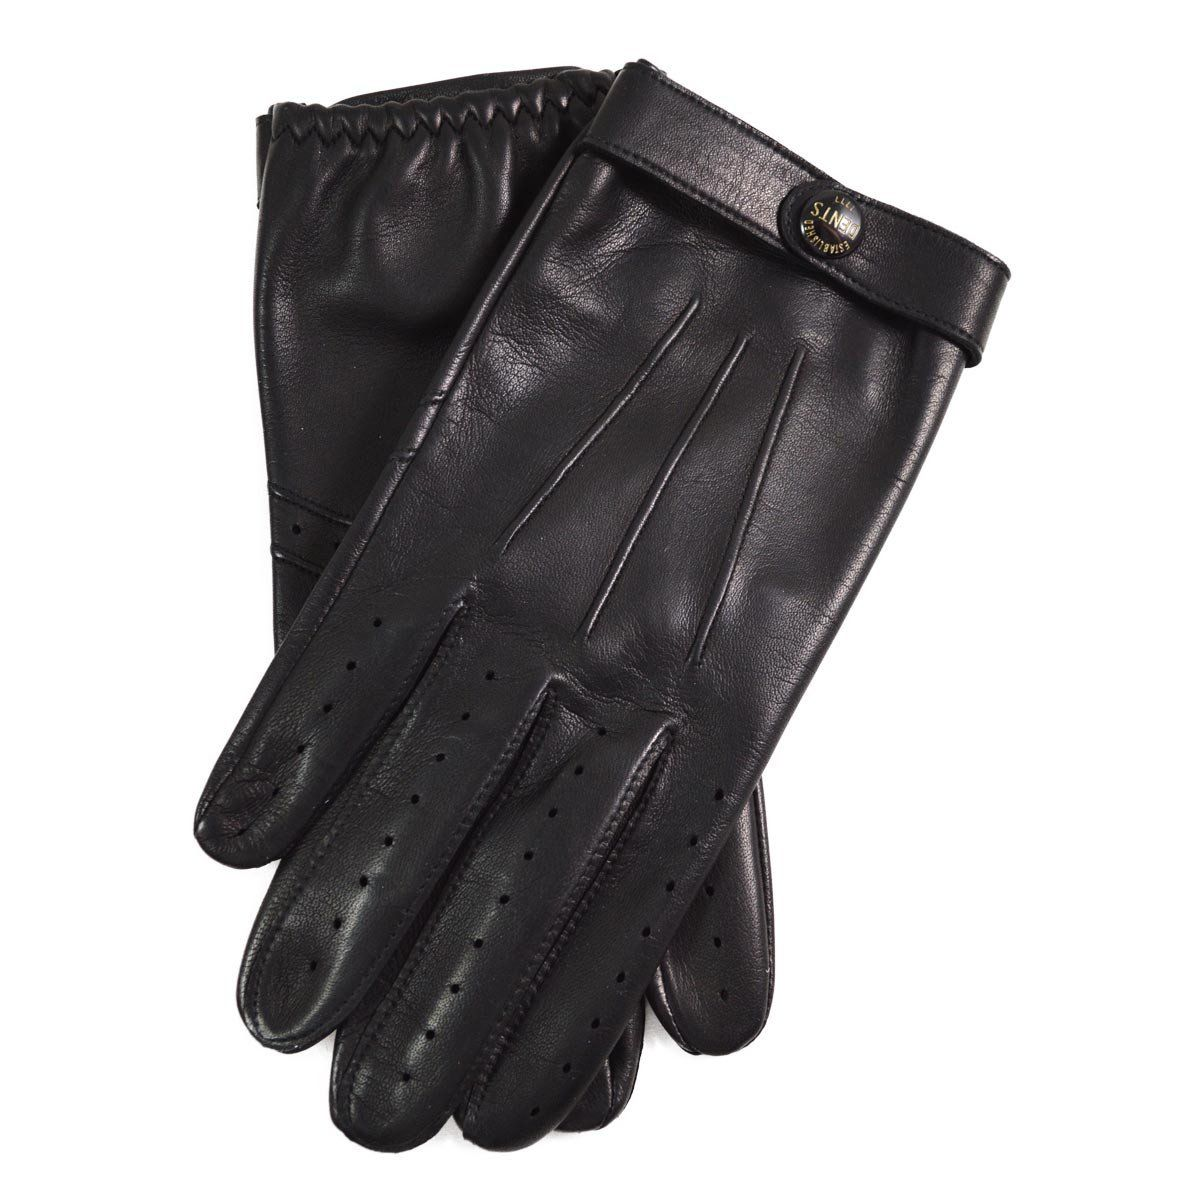 Handmade leather driving gloves - Dents Fleming Bond 007 Spectre Leather Driving Gloves